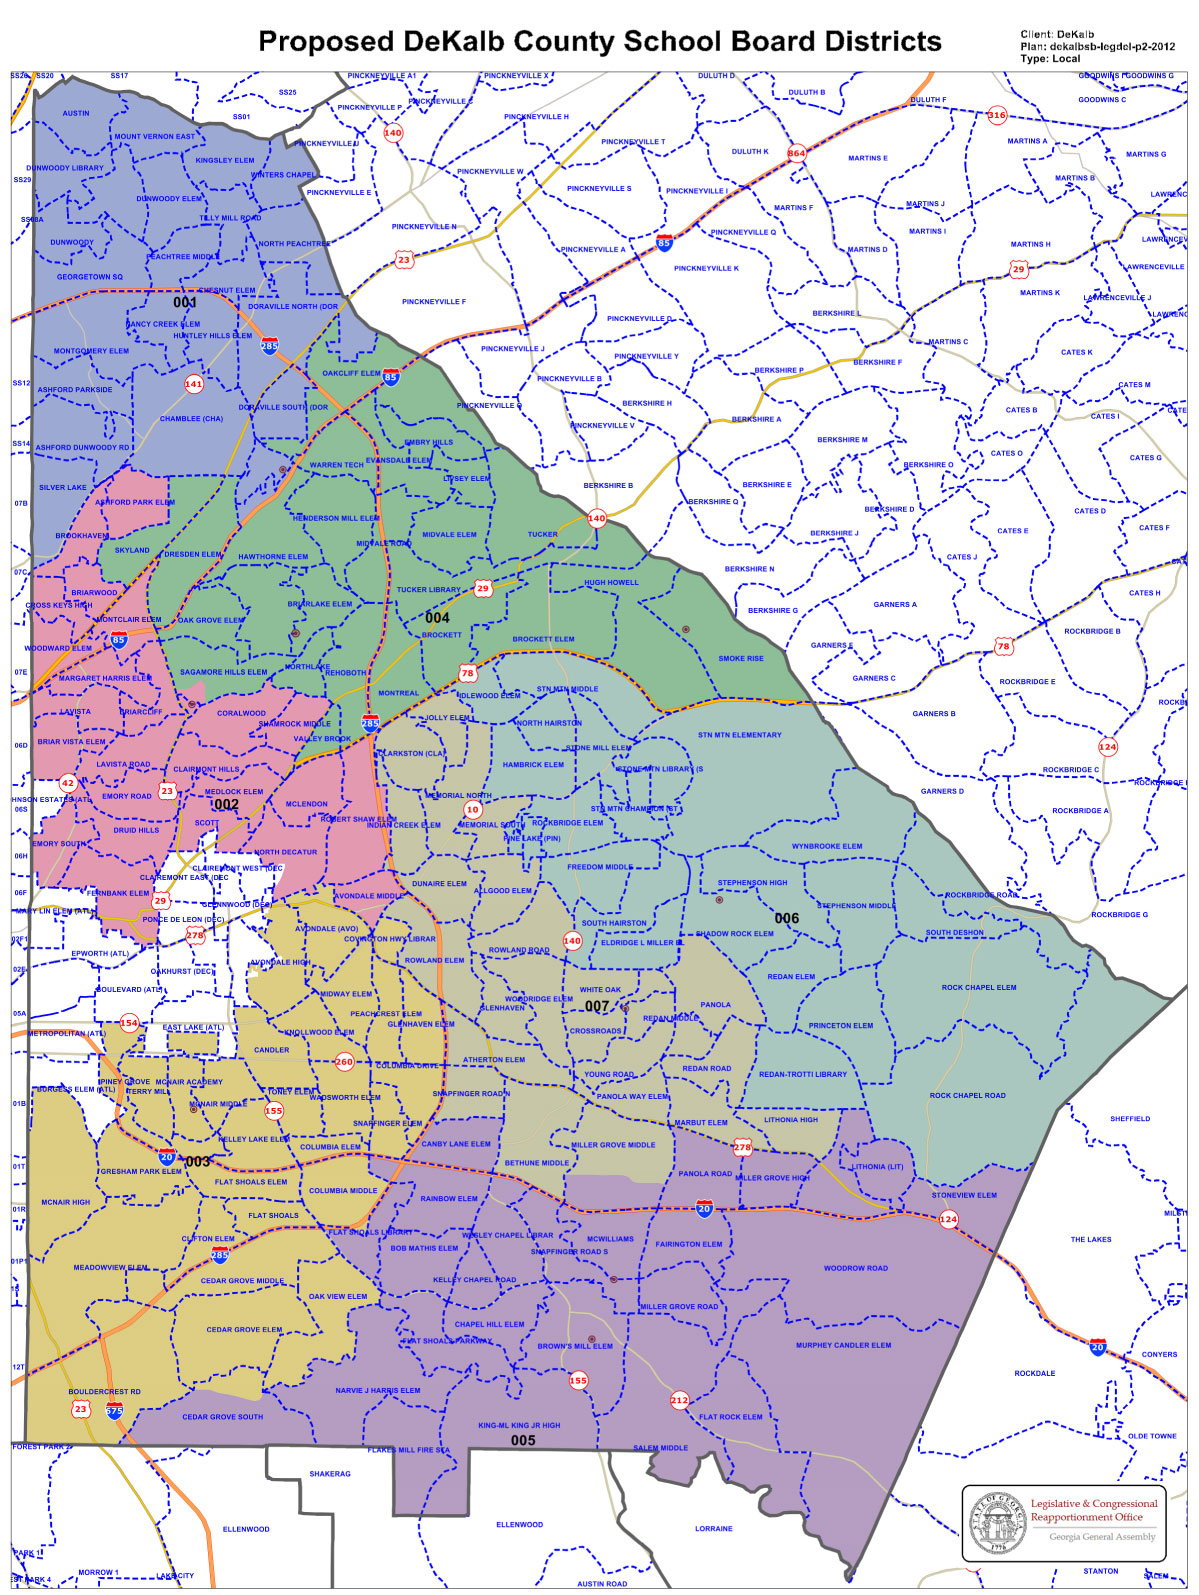 Final District Representative Map Approved | dekalb ... on